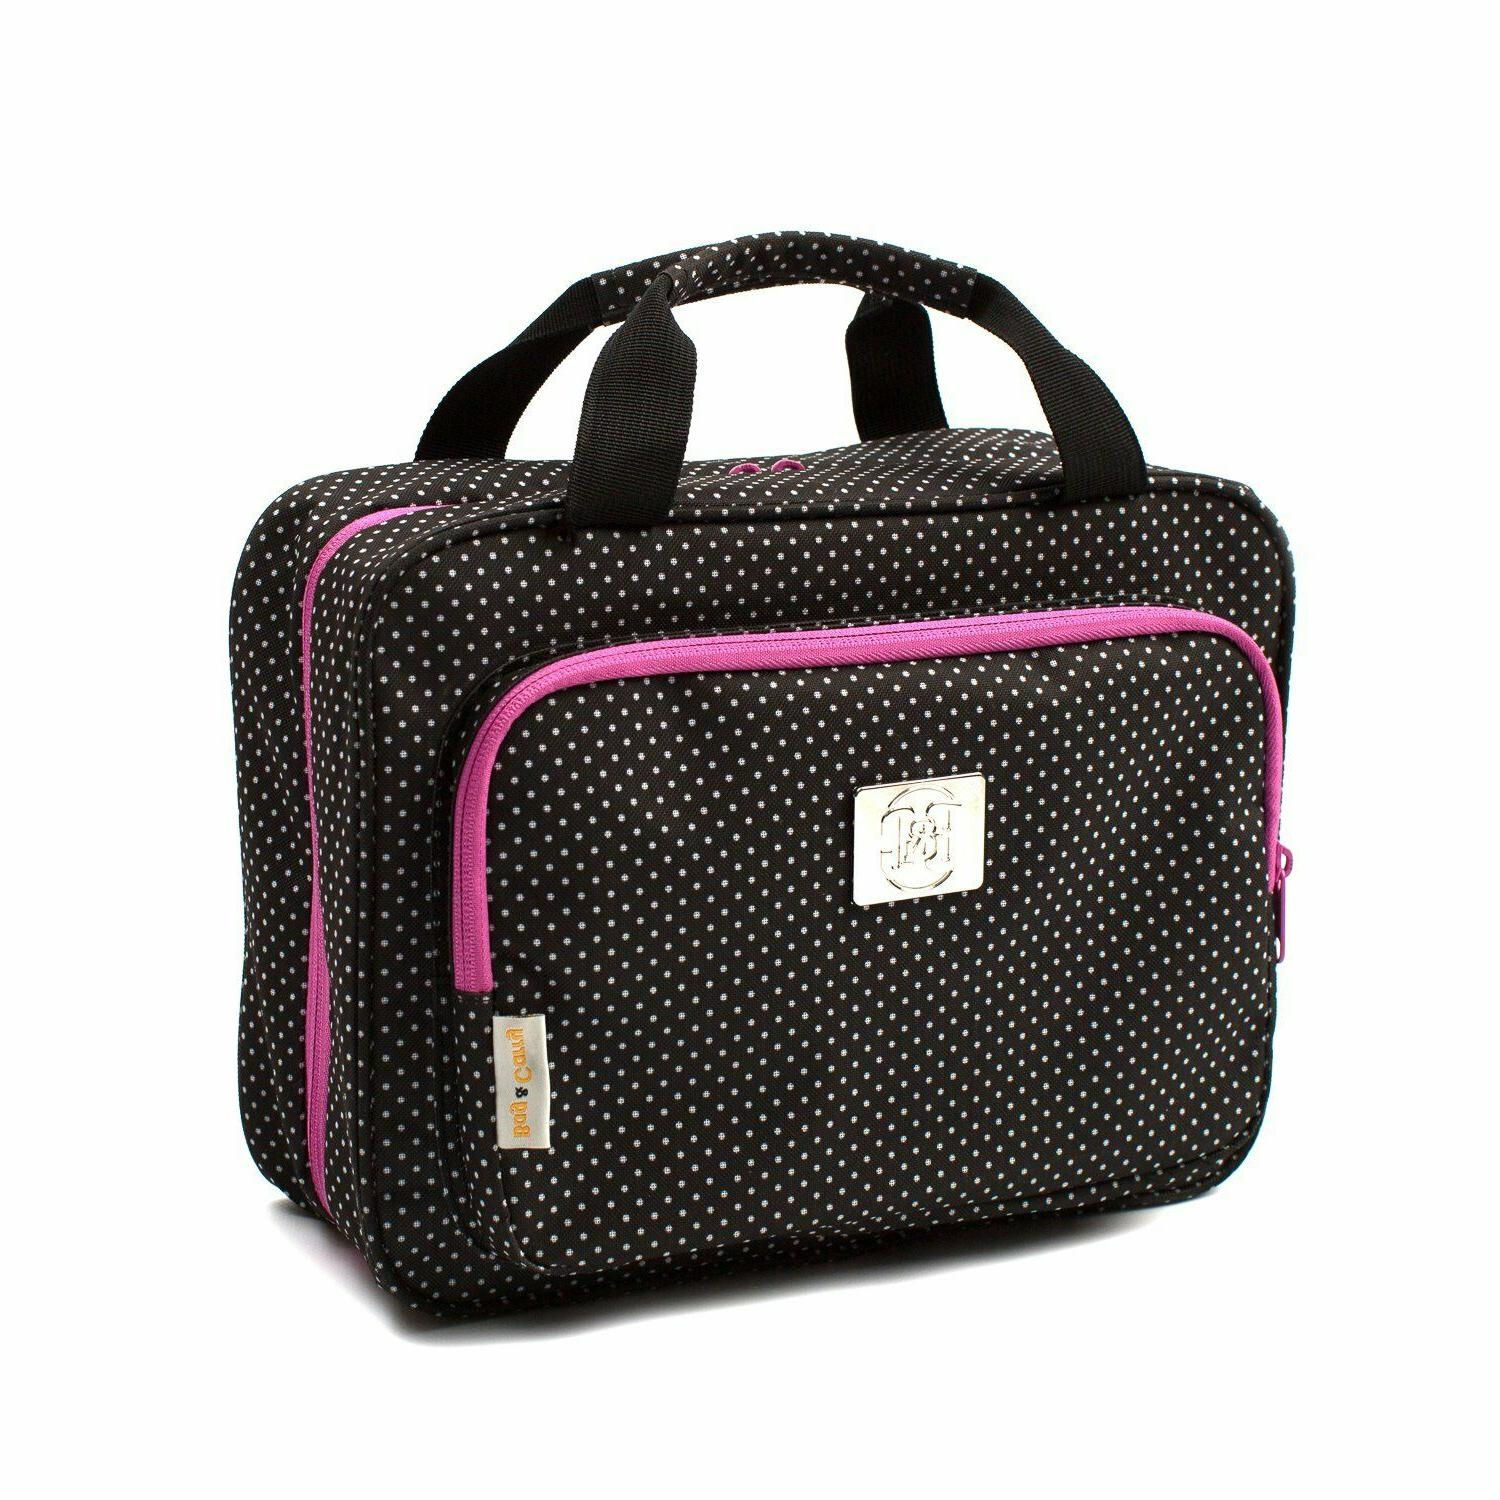 large travel cosmetic bag for women hanging